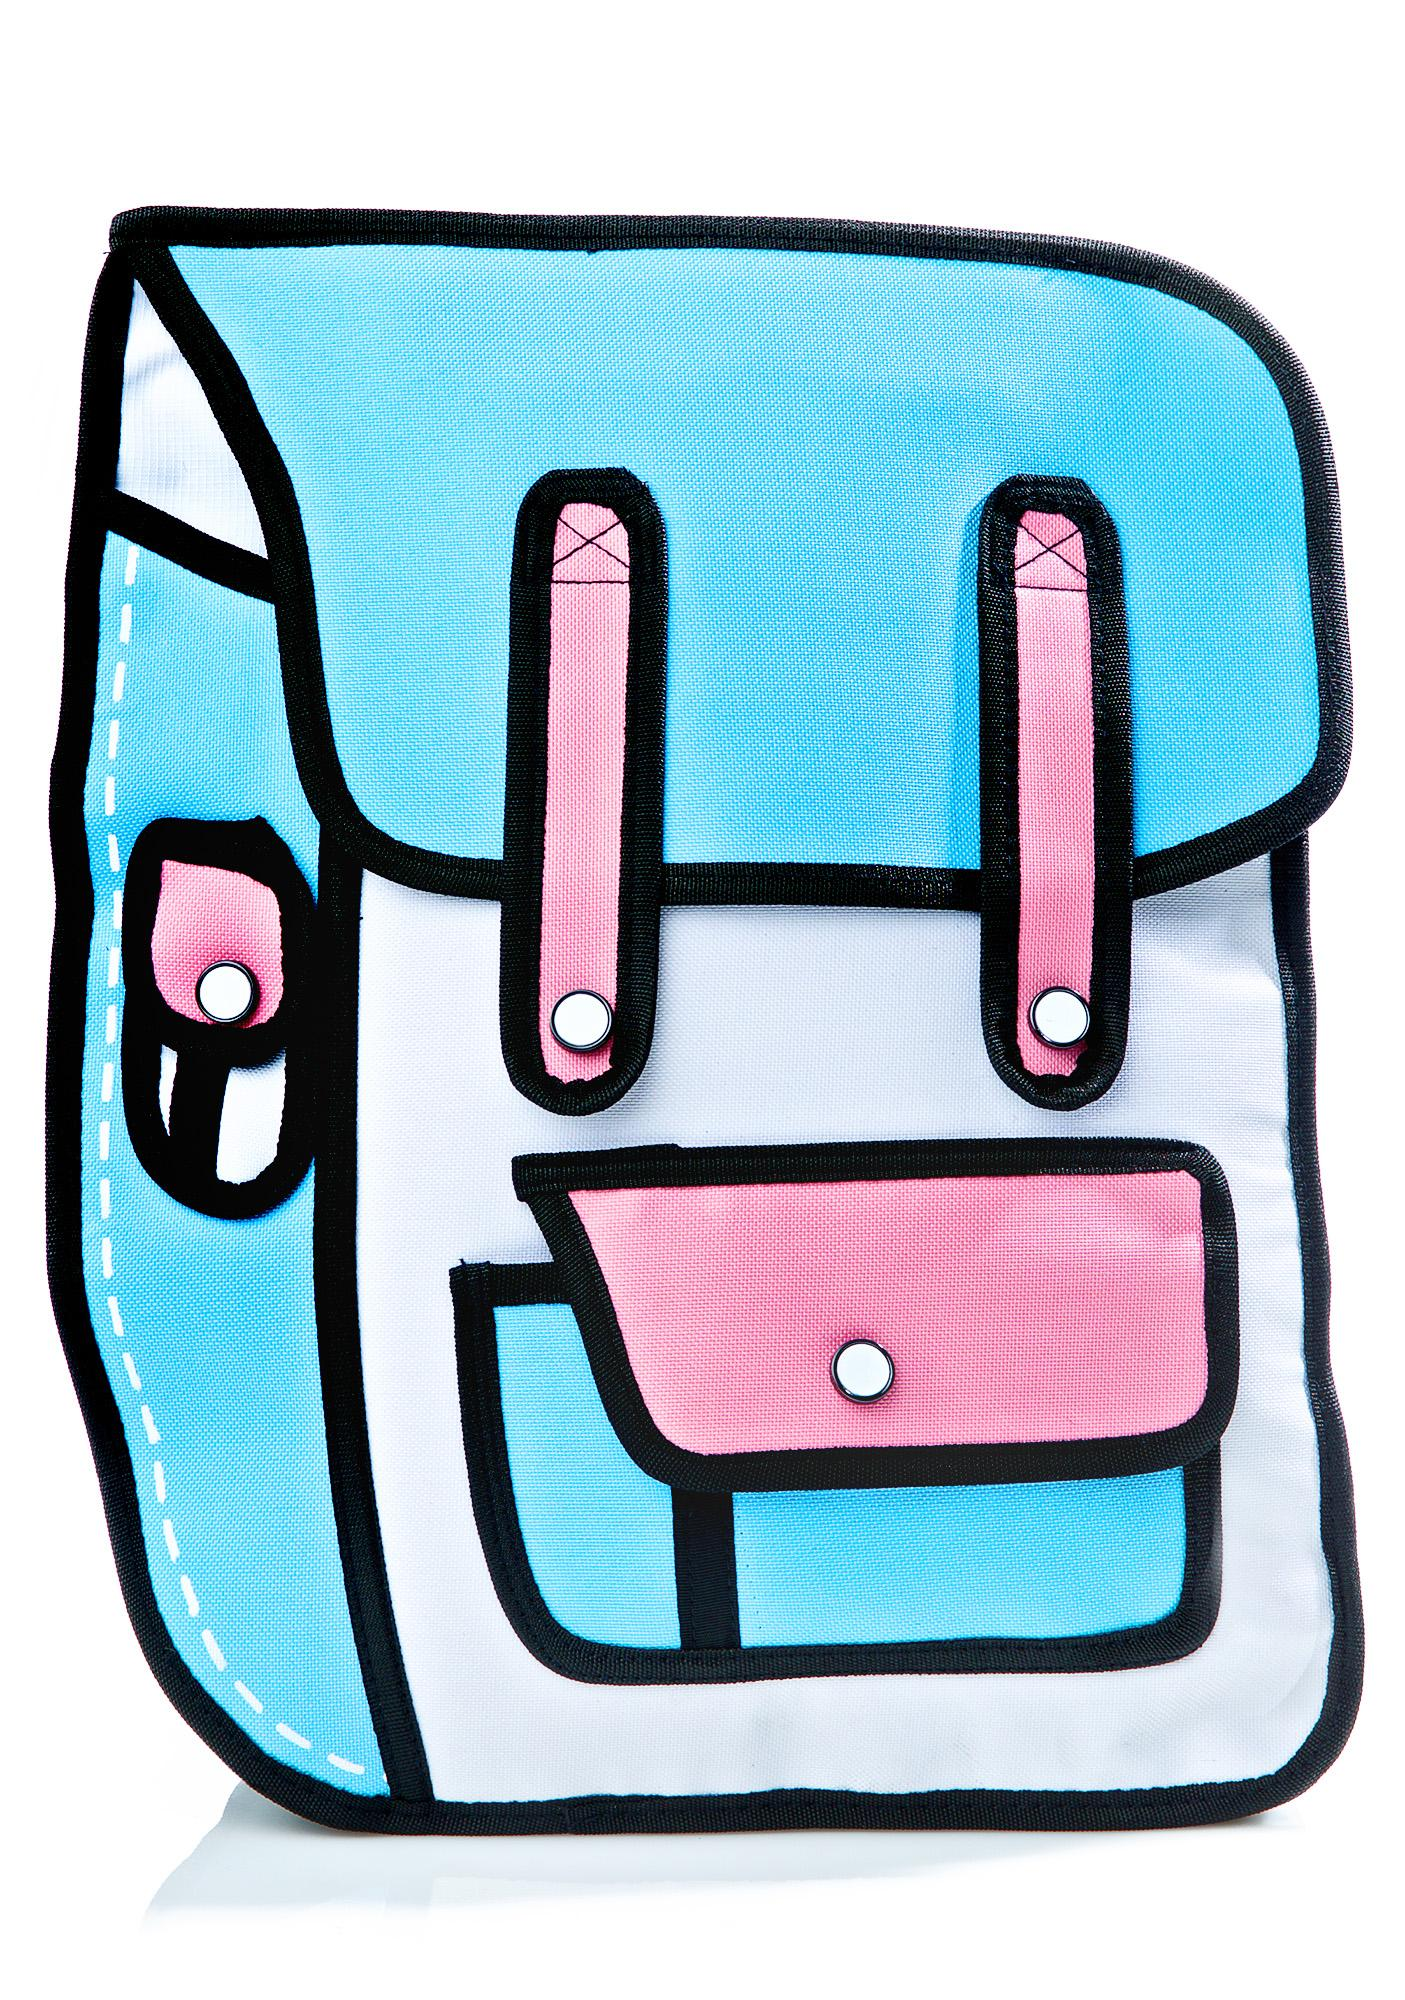 Backpack clipart blue purse. Delusional cartoon dolls